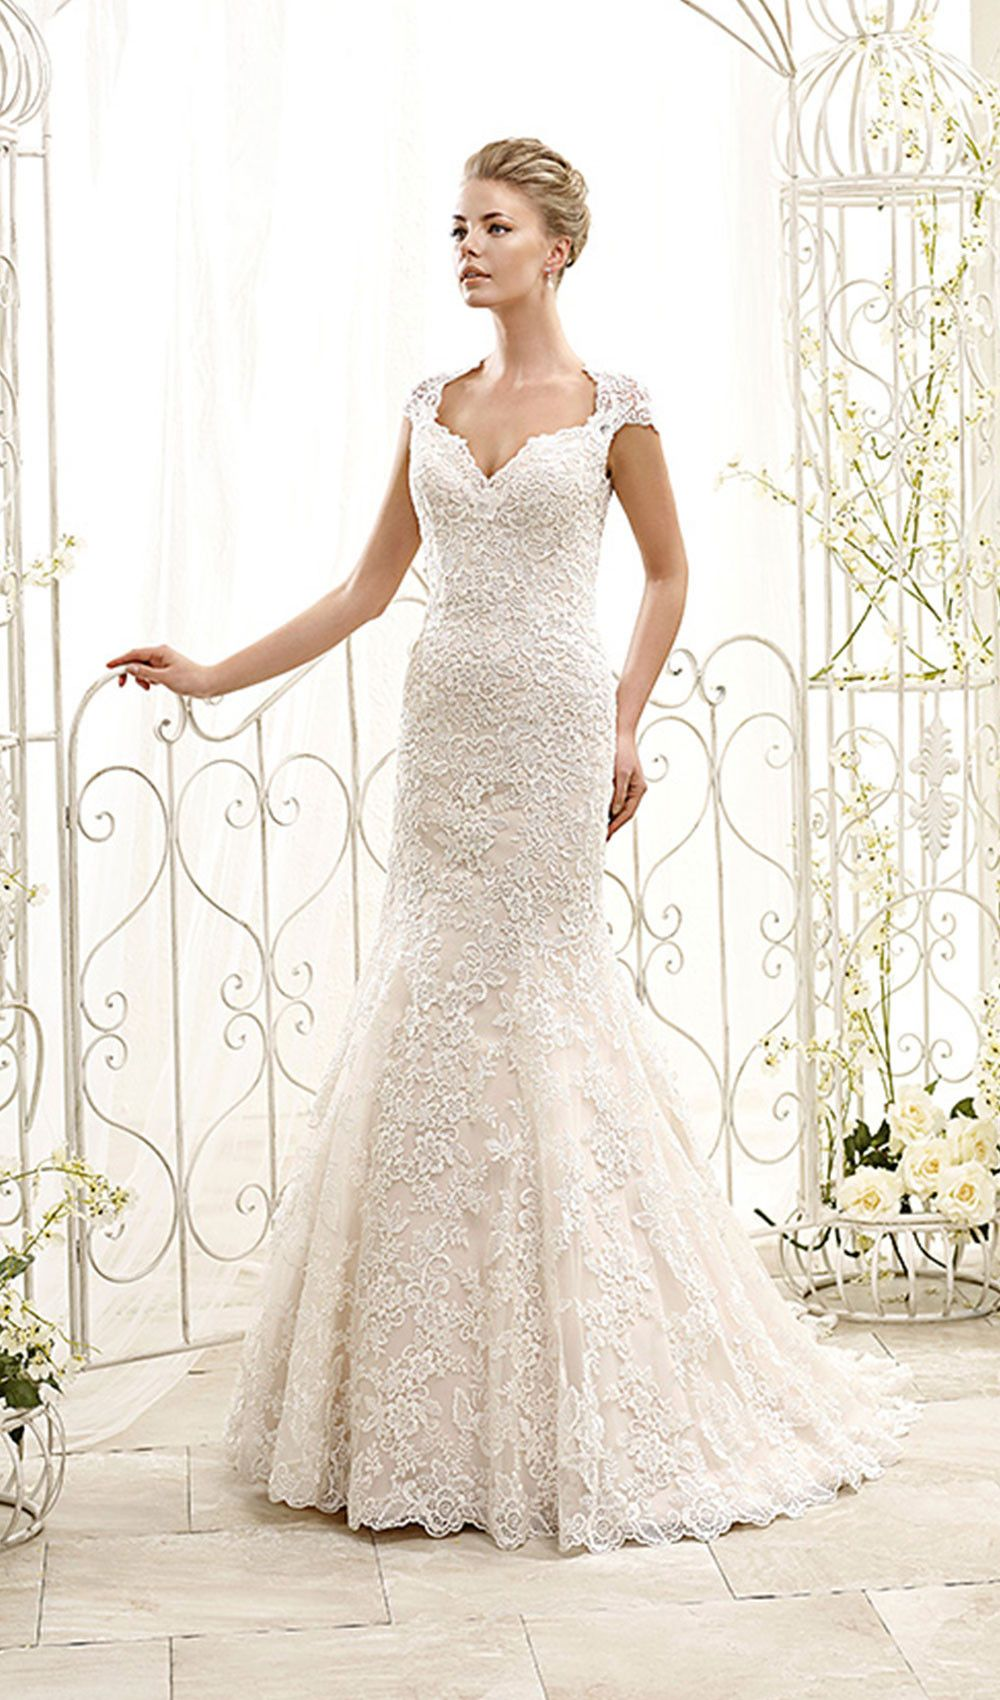 Try This Breathtaking Elegant Lace Wedding Dress With Incredible Back And Cap Sleeves From Eddy K Bridal Available At Schaffers In Scottsdale Arizona